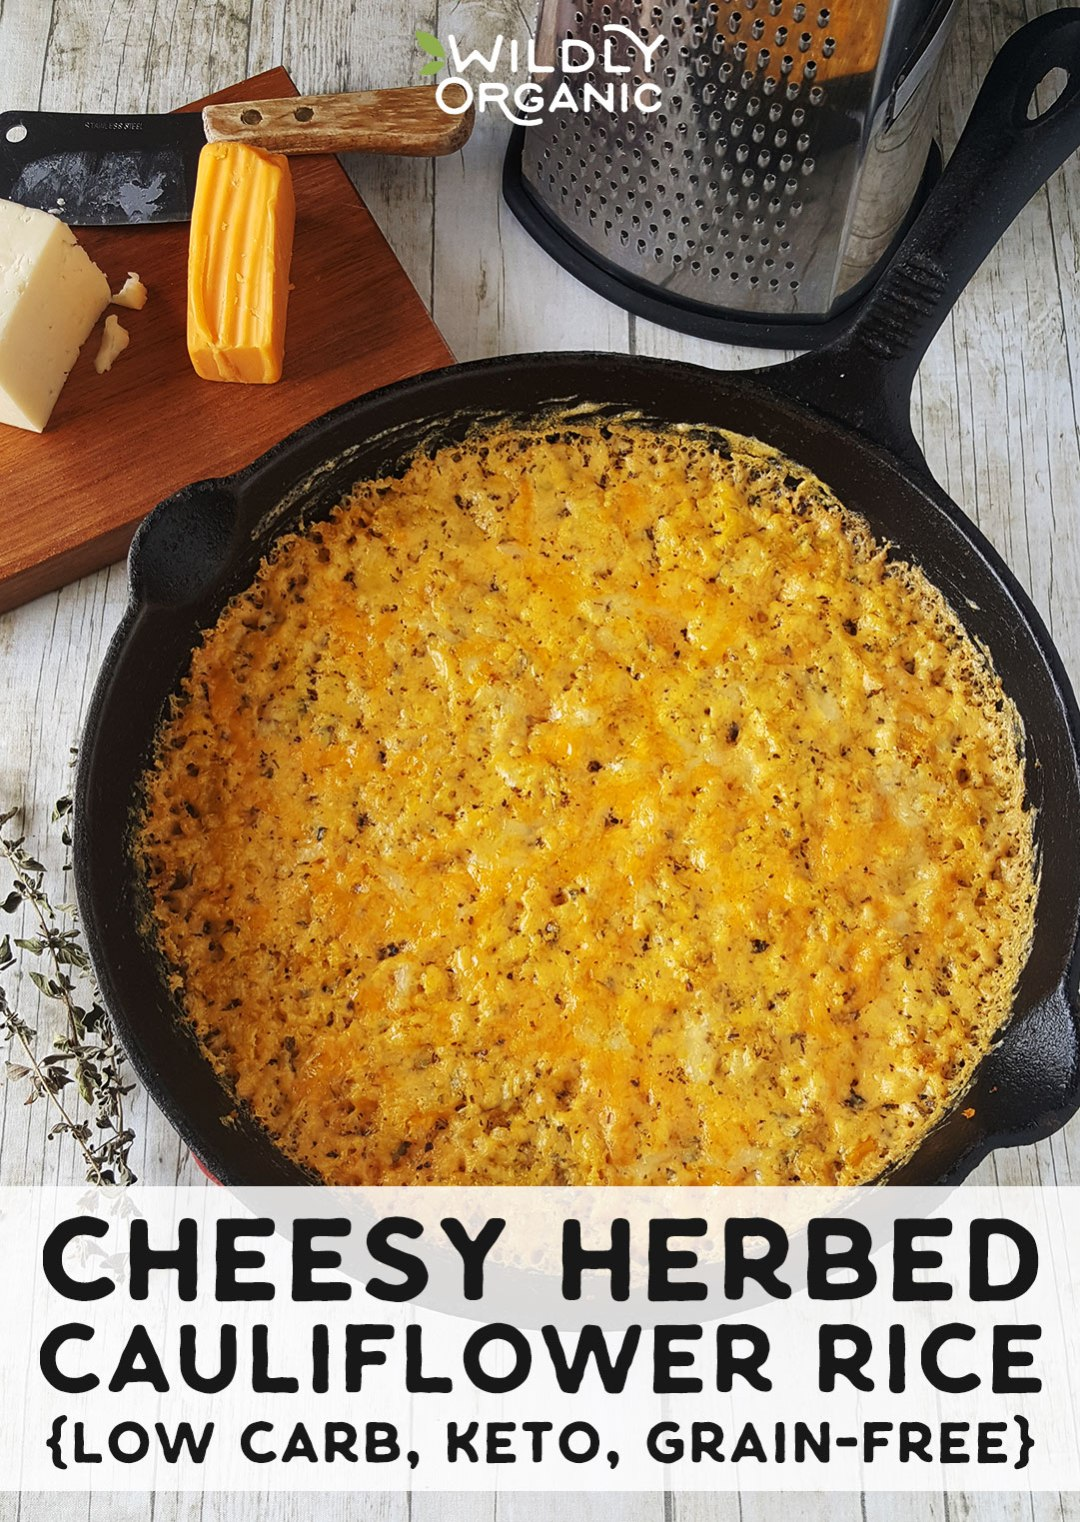 Photo of Cheesy Herbed Cauliflower Rice in a cast iron skillet with cheese, a cutting board, knife, and grater in the background.